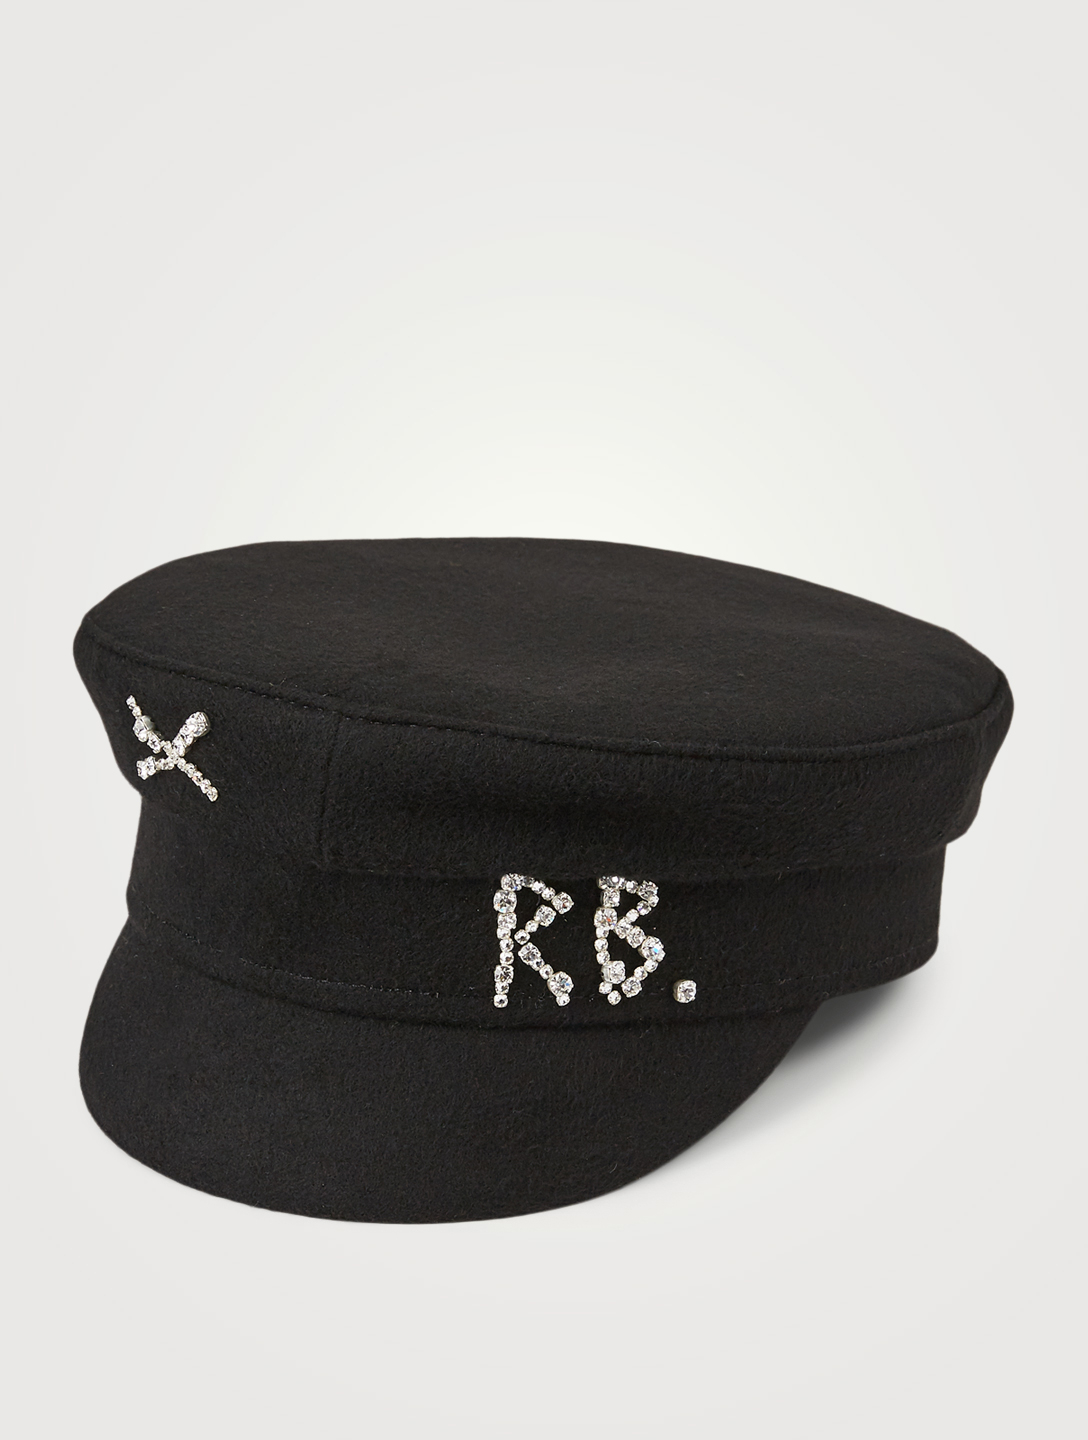 RUSLAN BAGINSKIY Wool Baker Boy Cap With Crystal Logo Women's Black